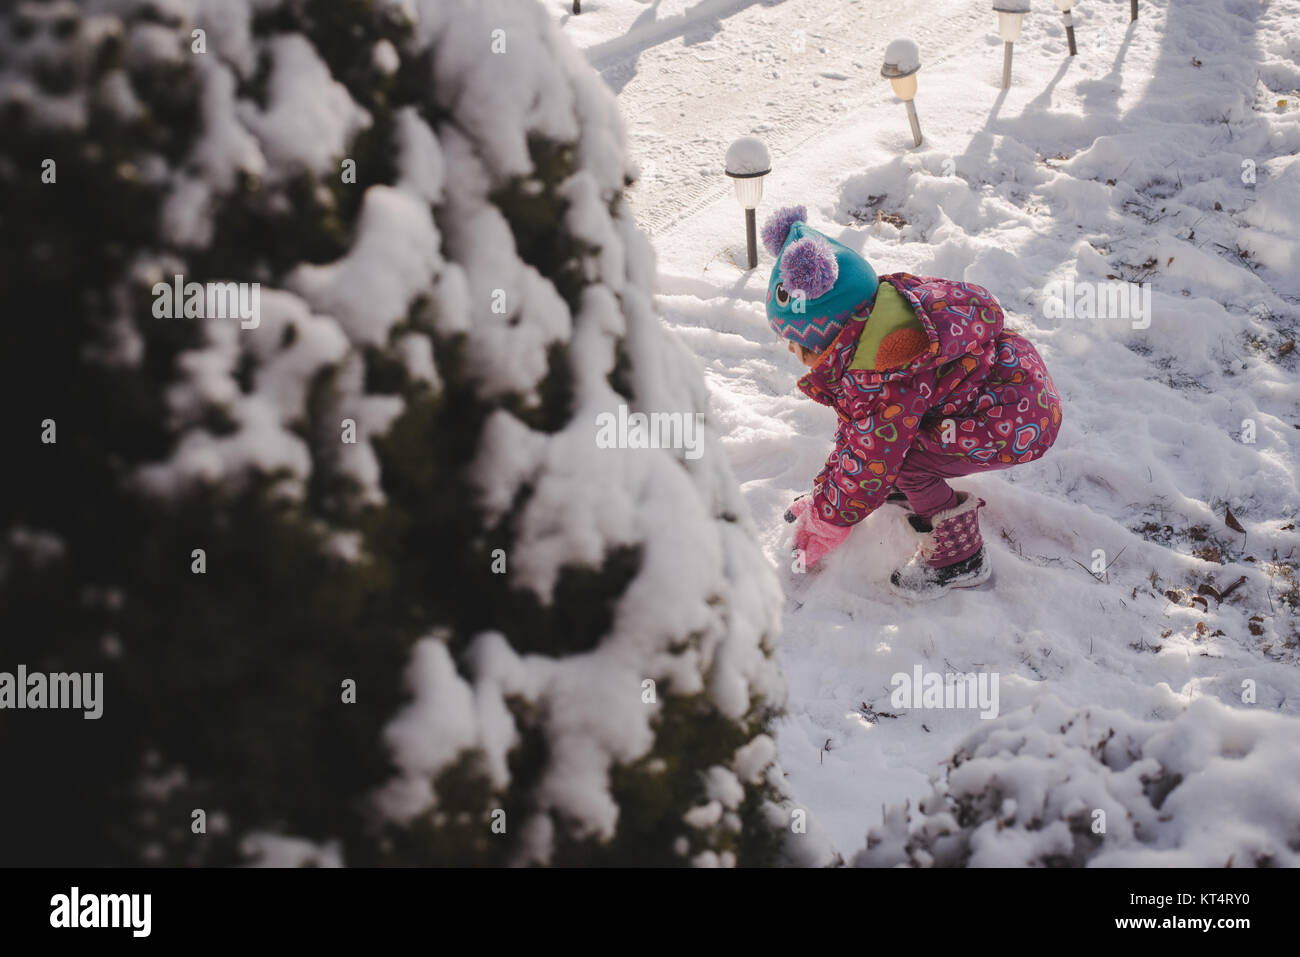 A toddler girl wearing a colorful coat plays in the snow. - Stock Image